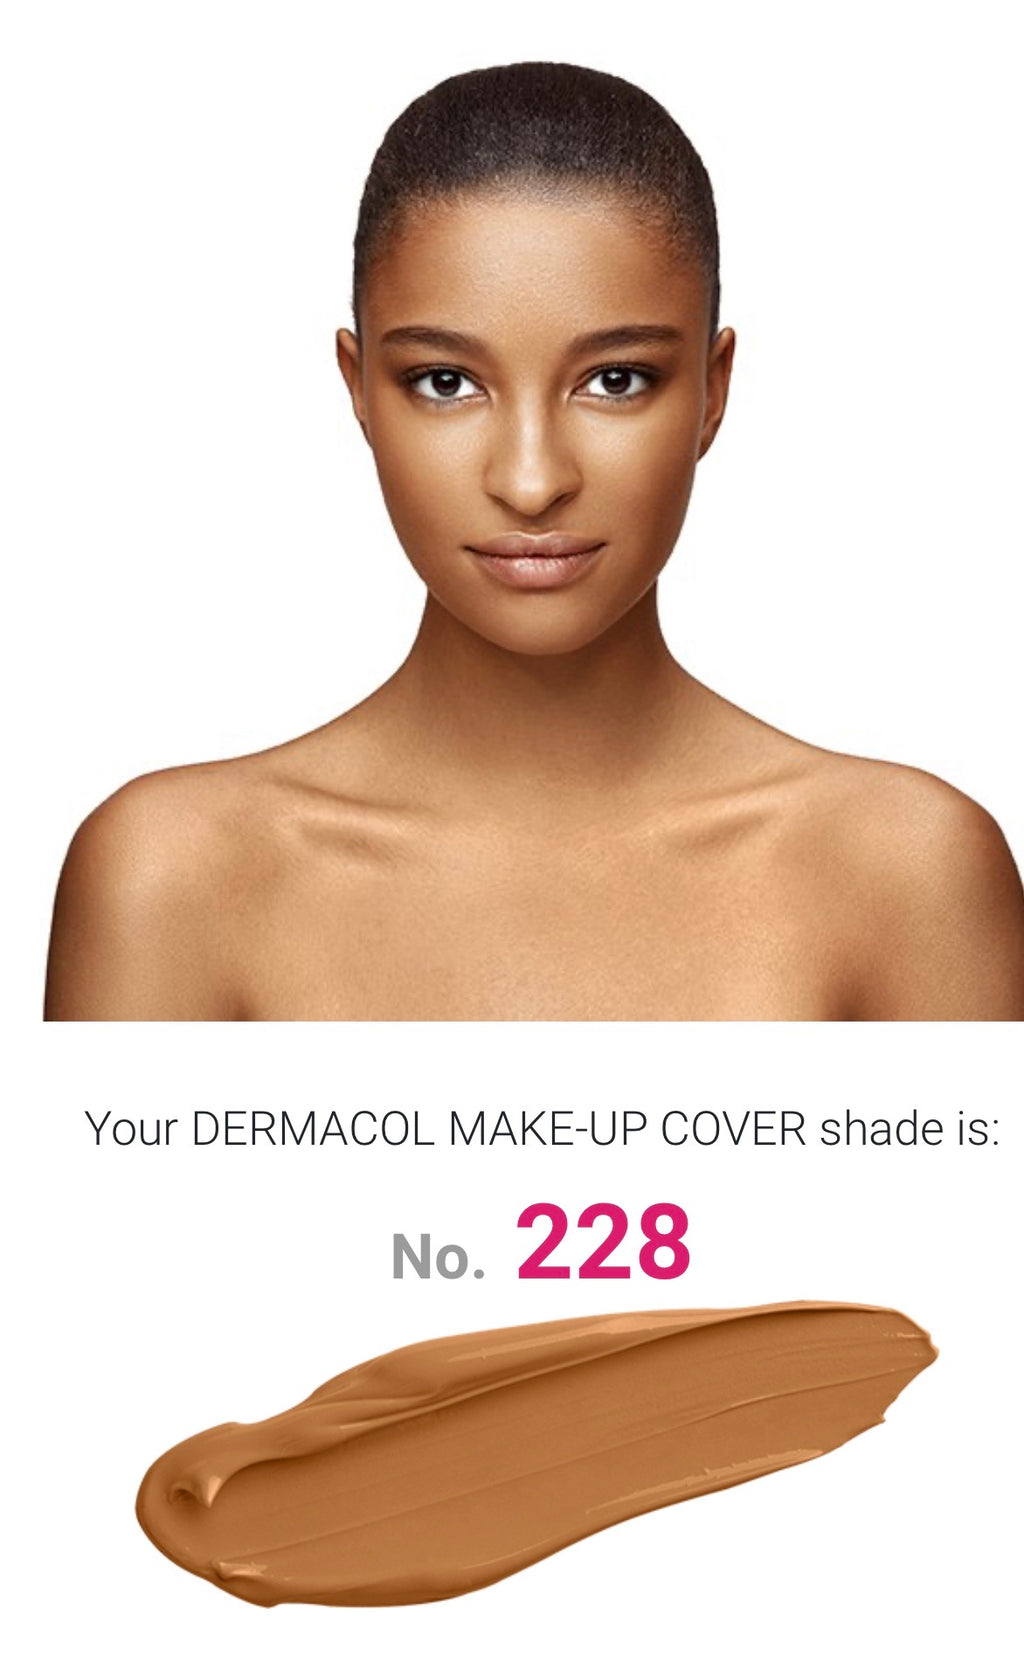 MAKE UP COVER - SHADE 228